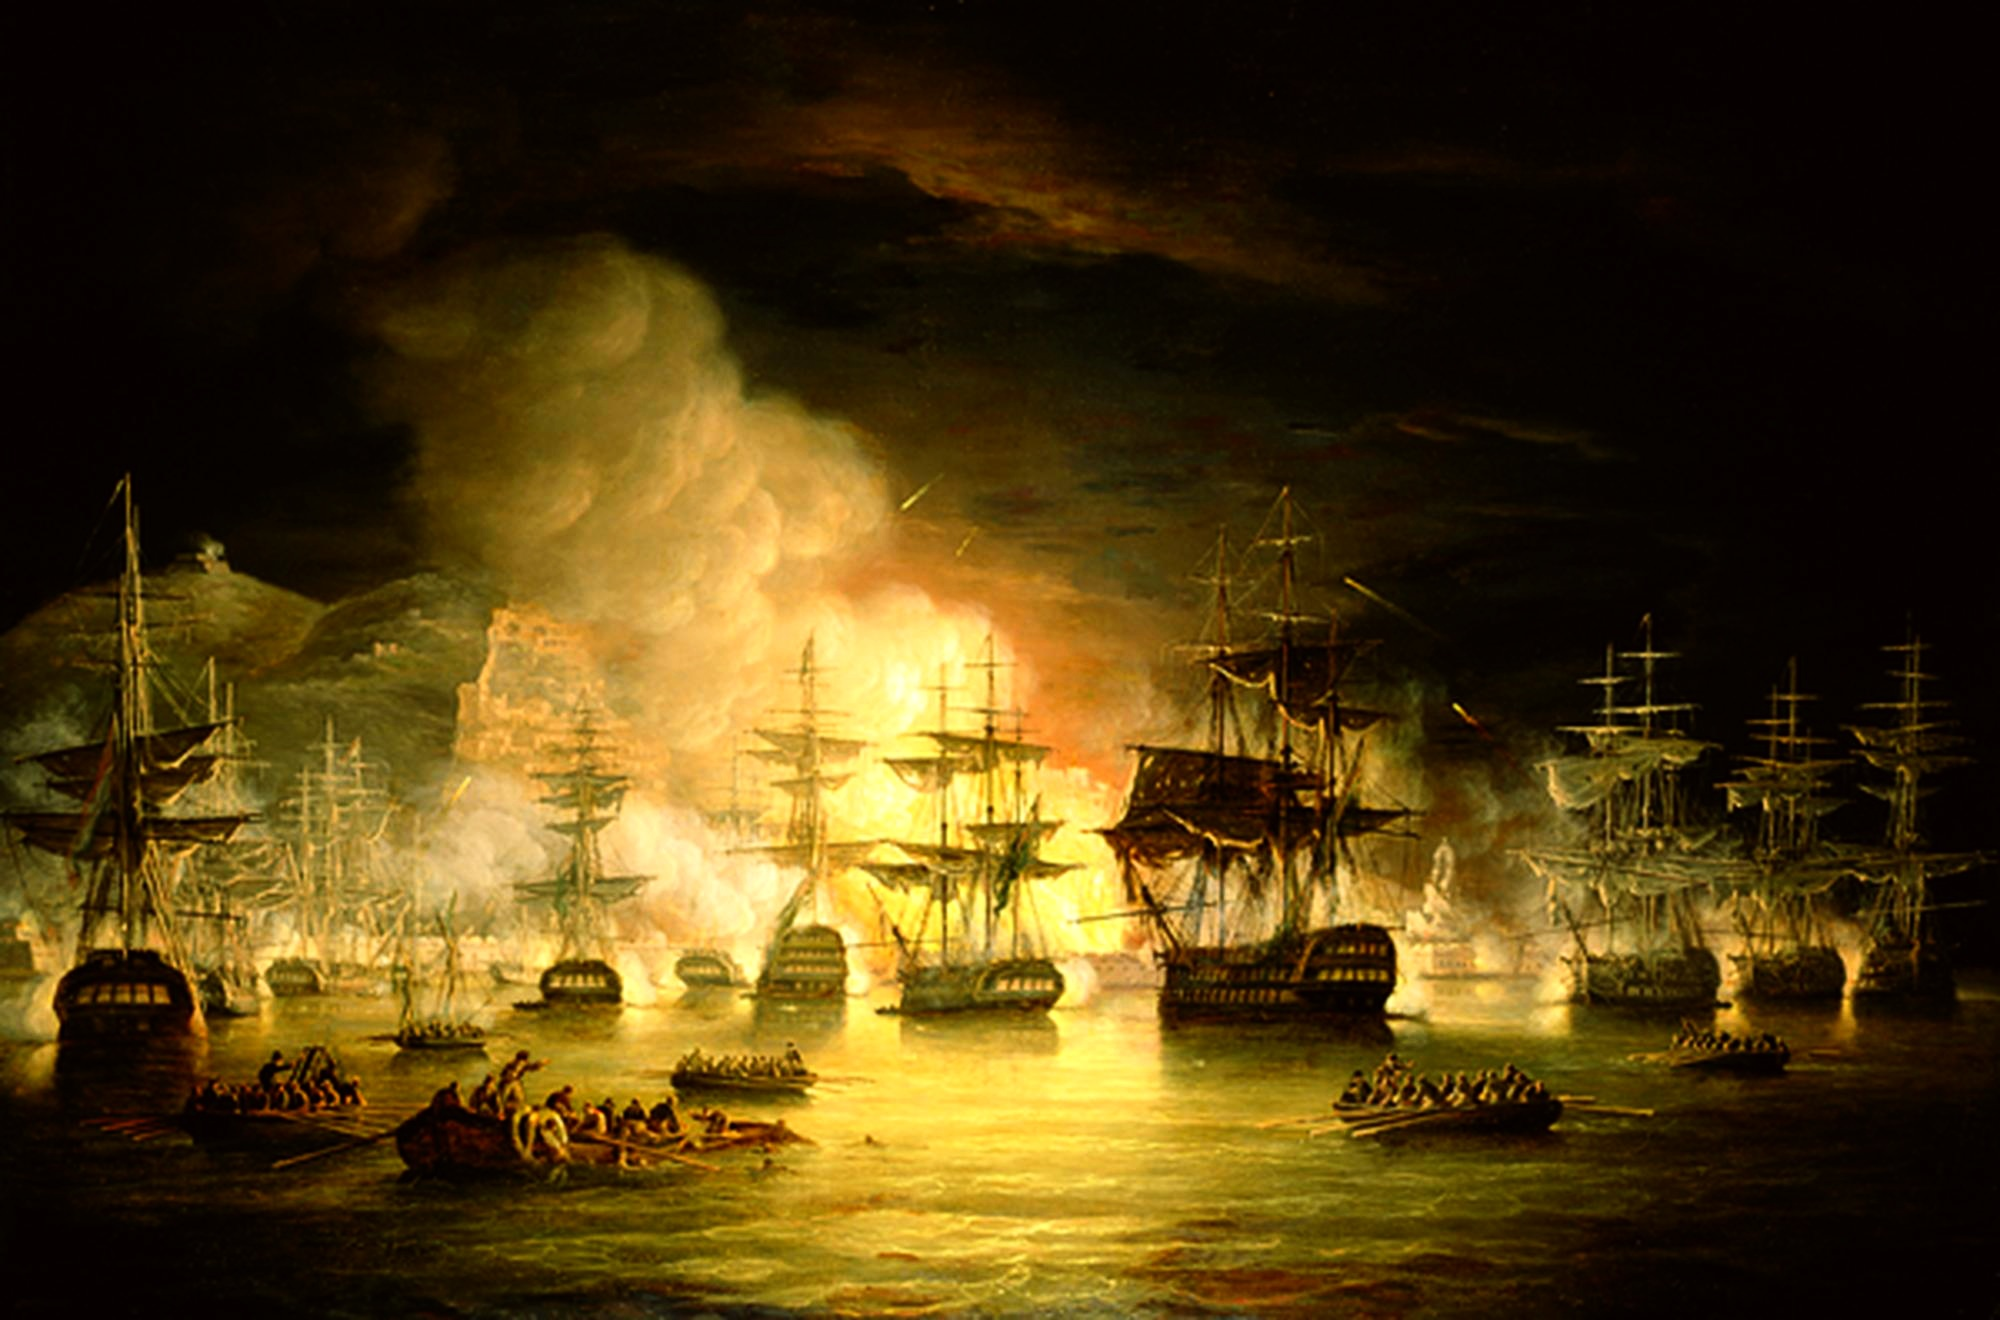 Fichier:Sm Bombardment of Algiers, August 1816-Luny.jpg